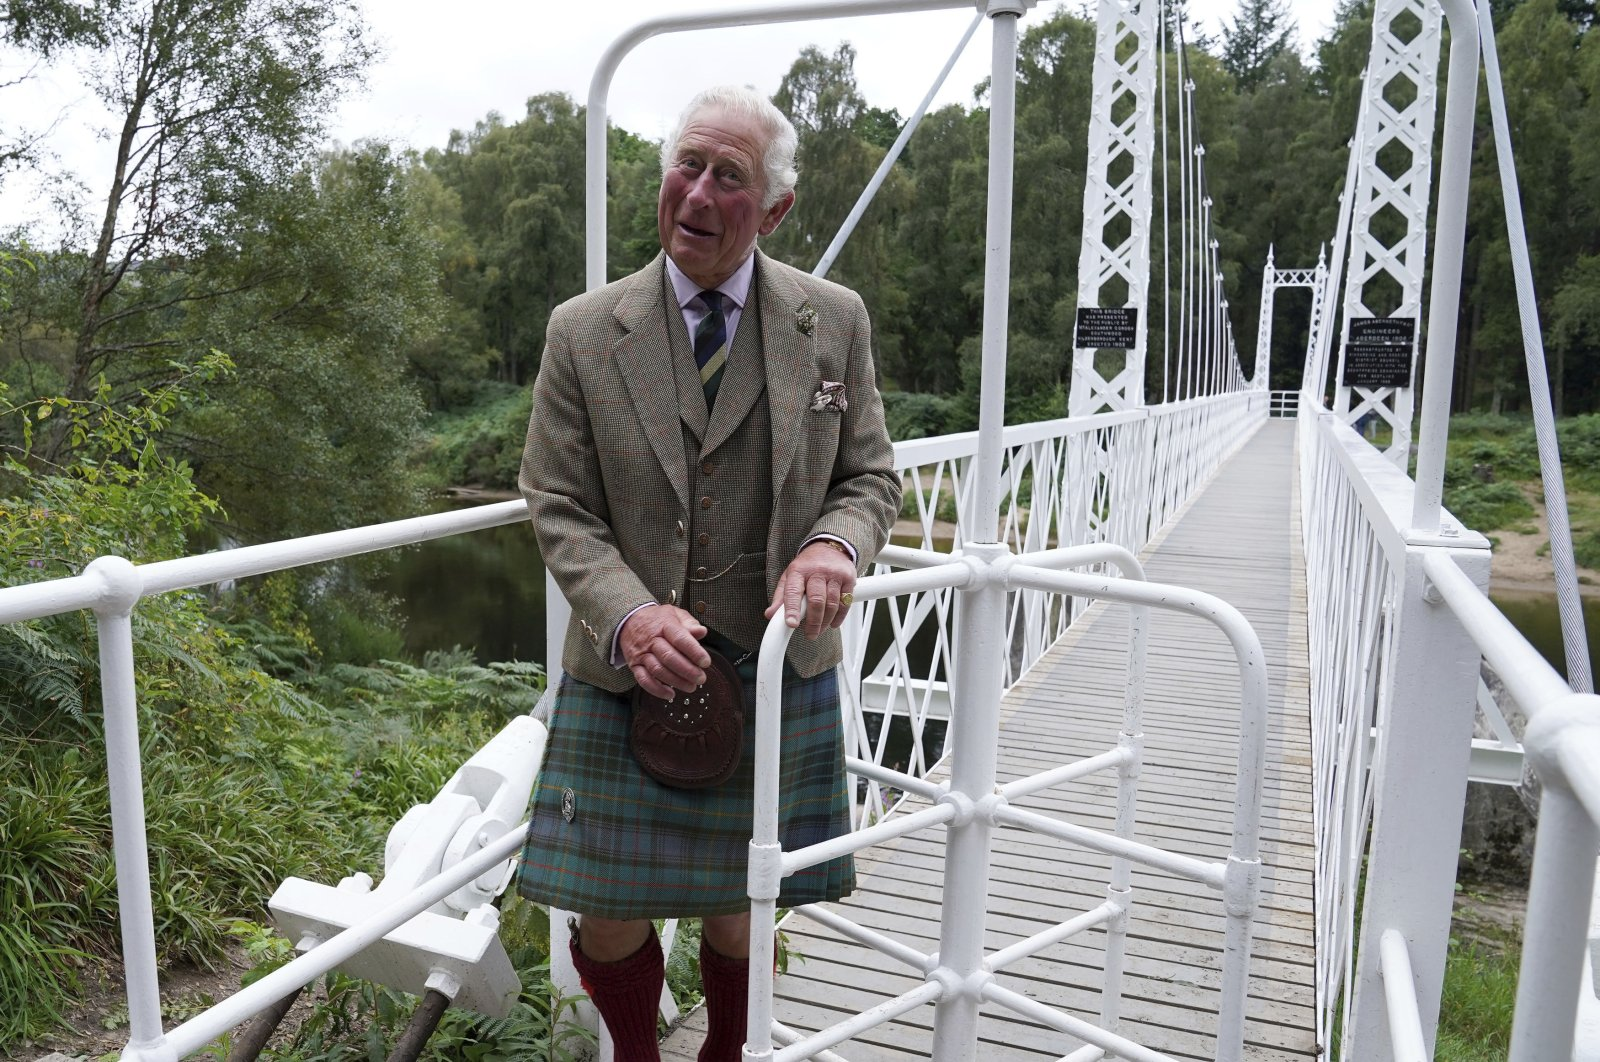 Britain's Prince Charles, known as the Duke of Rothesay when in Scotland, reacts during a visit to Cambus O'May suspension bridge following its repair, in Ballater, Scotland, U.K., Aug. 31, 2021. (AP Photo)